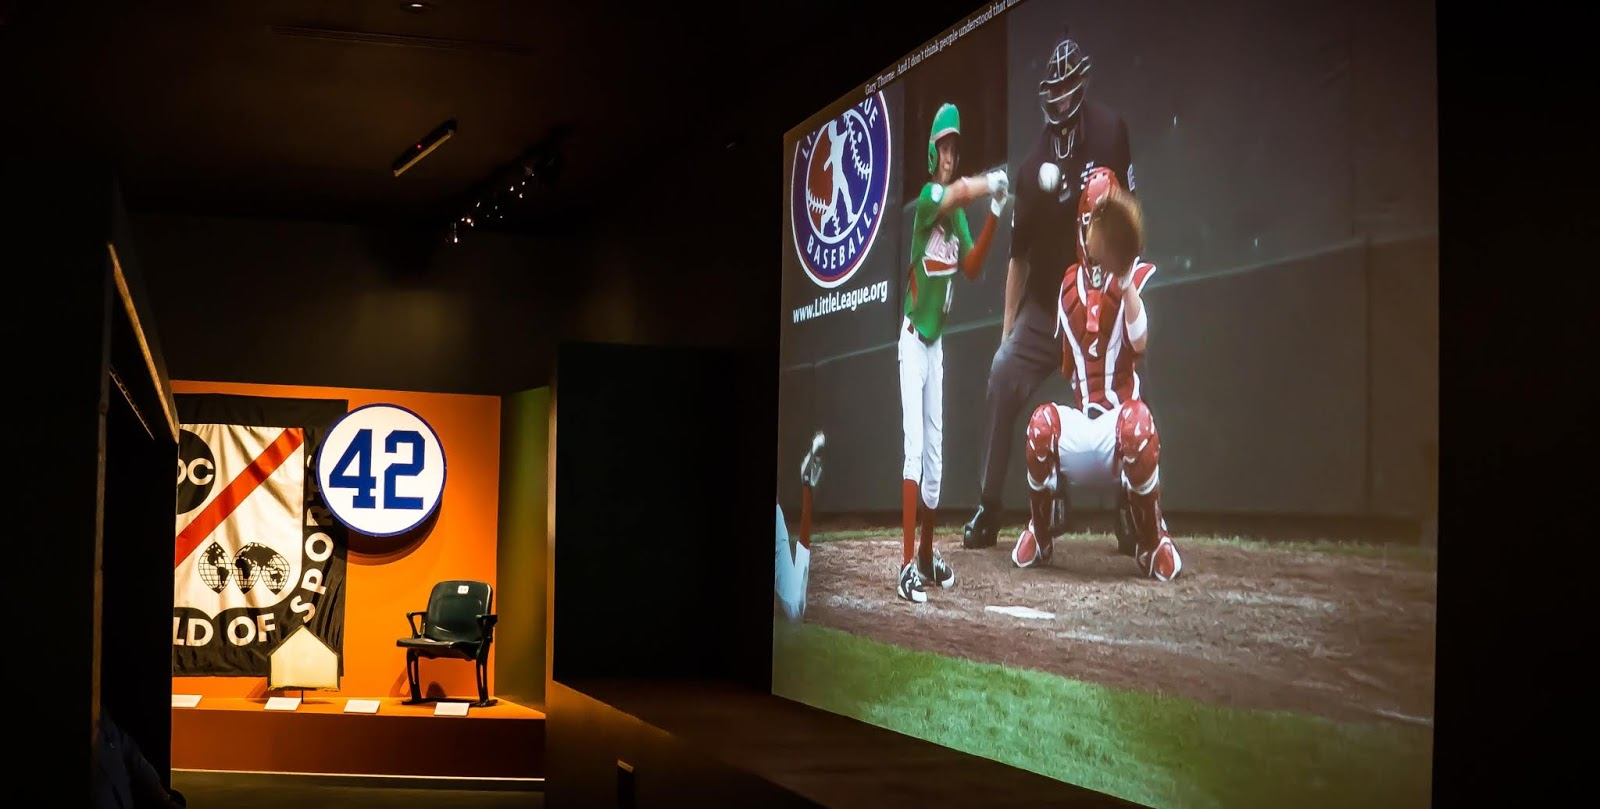 Little League News: World of Little League® Museum Excited